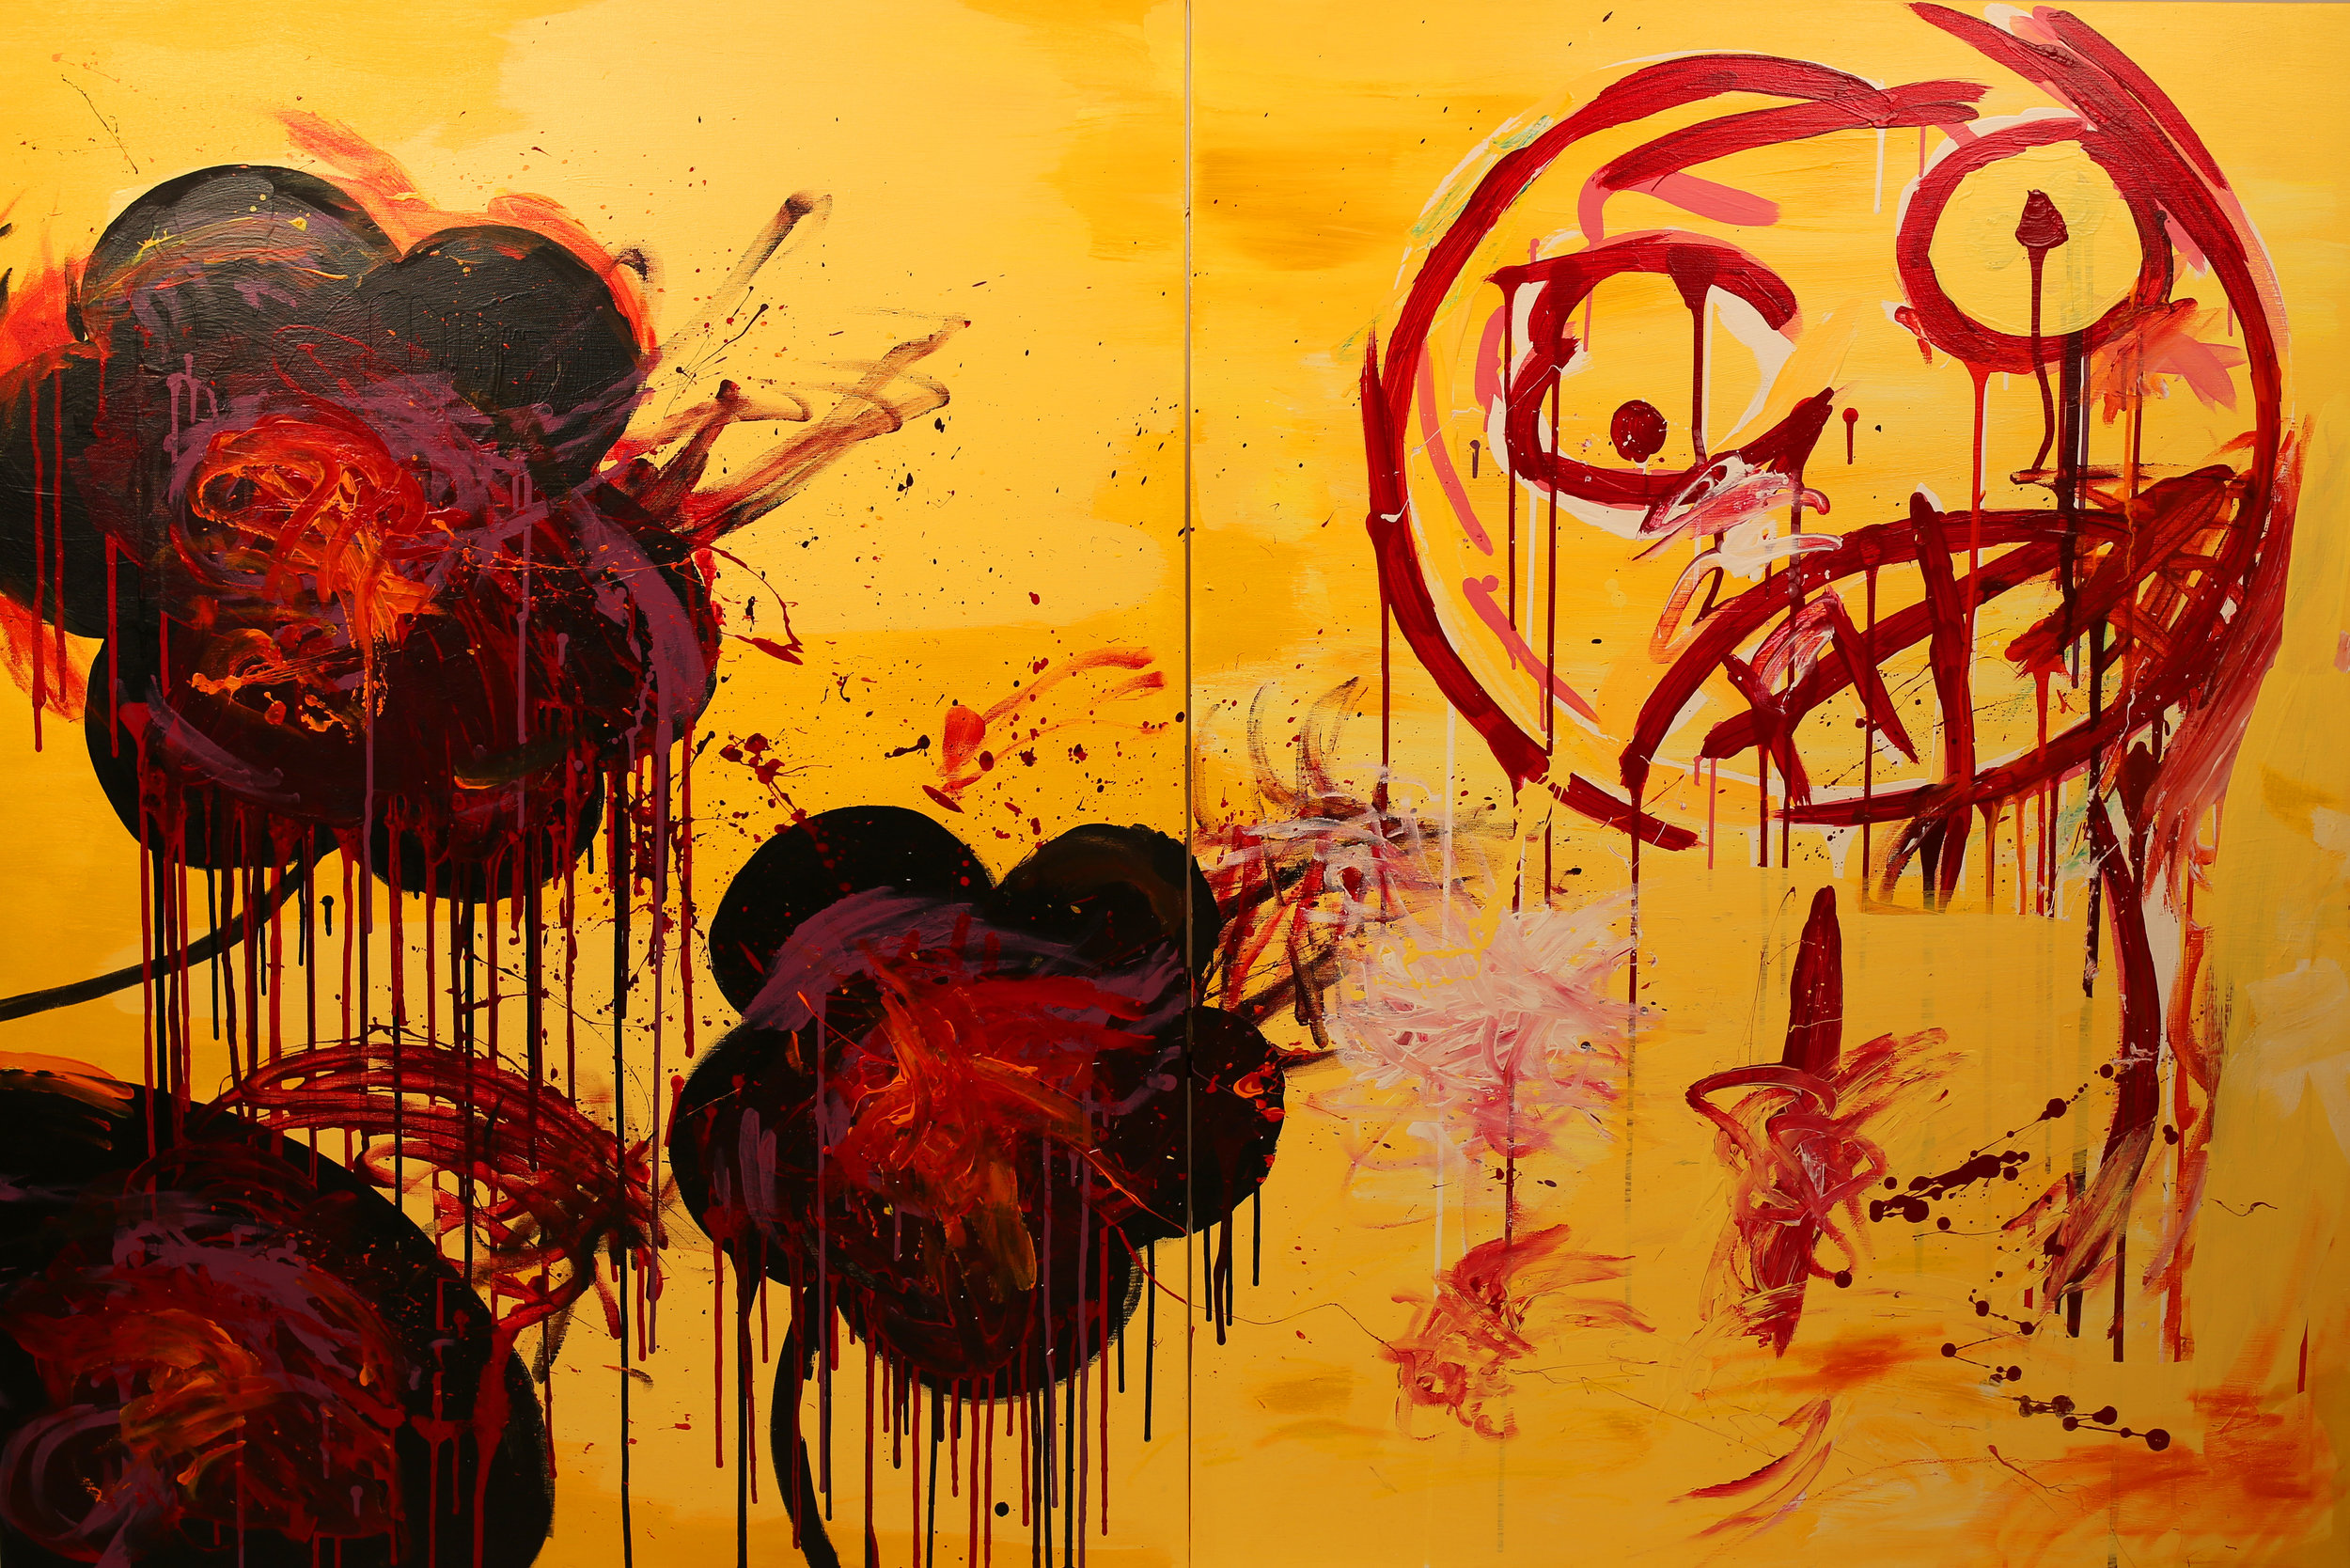 Fight.  Acrylic, pastel on canvas. 48 x 72 x 1 in. Executed in 2017.